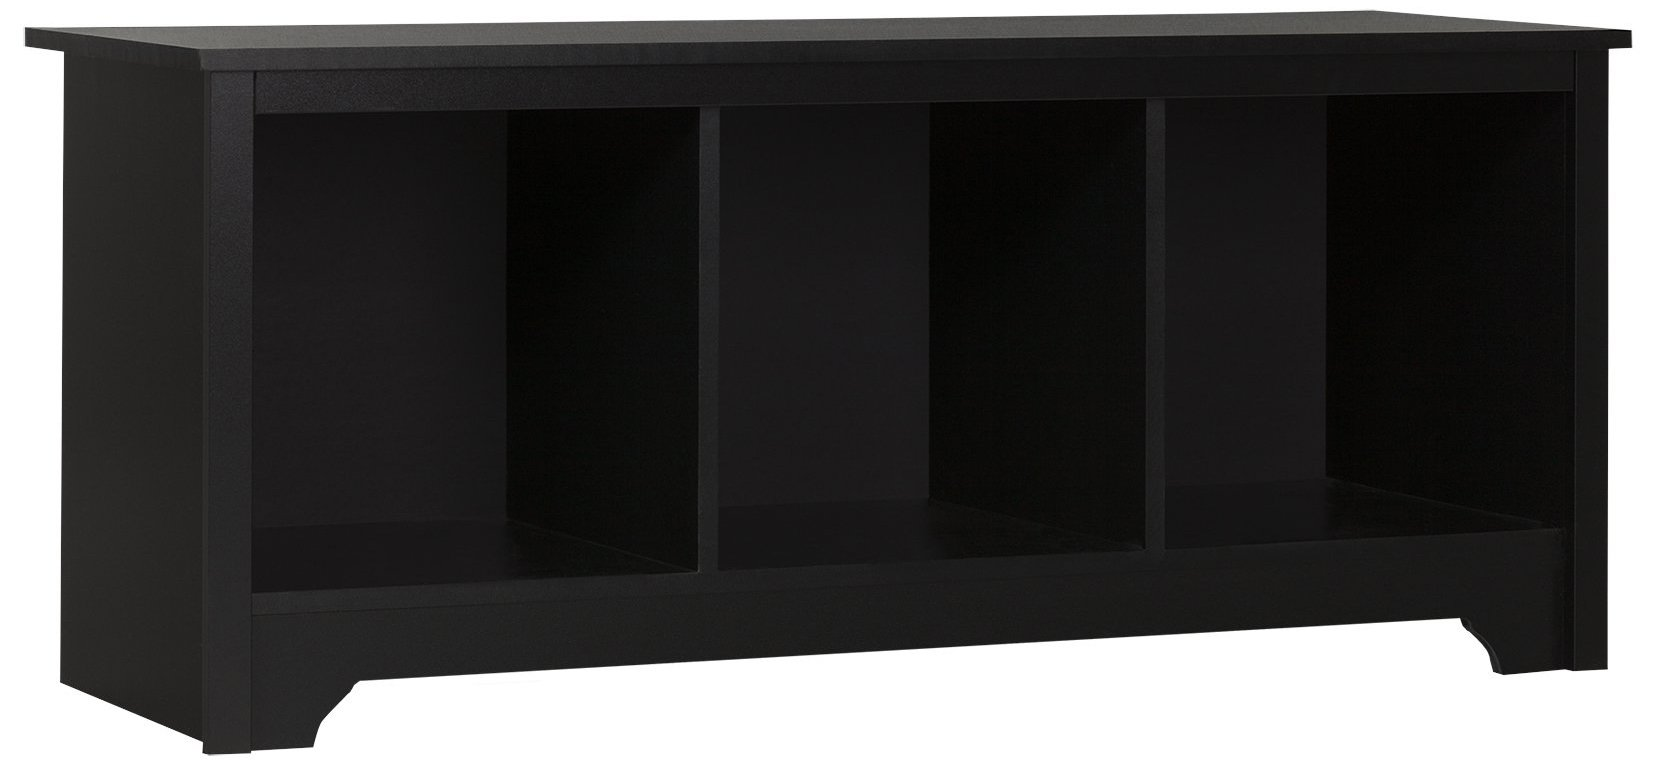 South Shore Vito Cubby Storage Bench, Pure Black